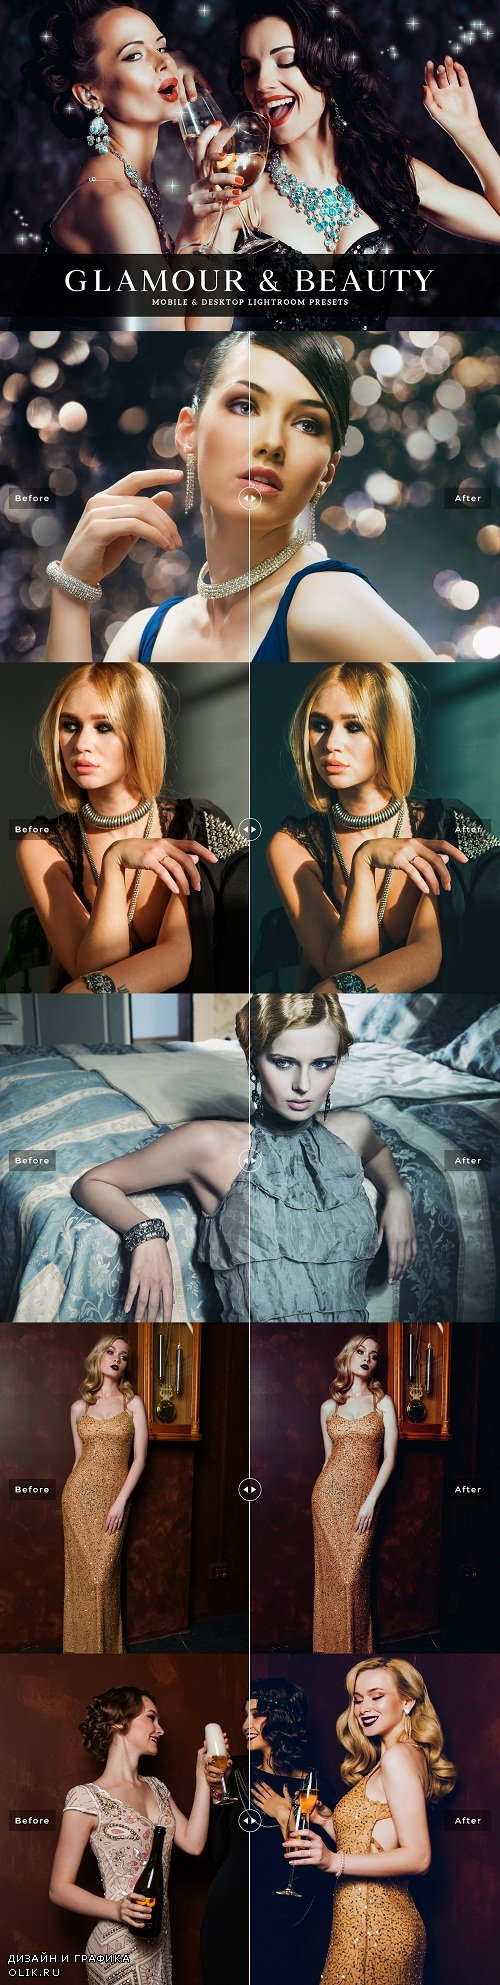 Glamour & Beauty Lightroom Presets - 3758427